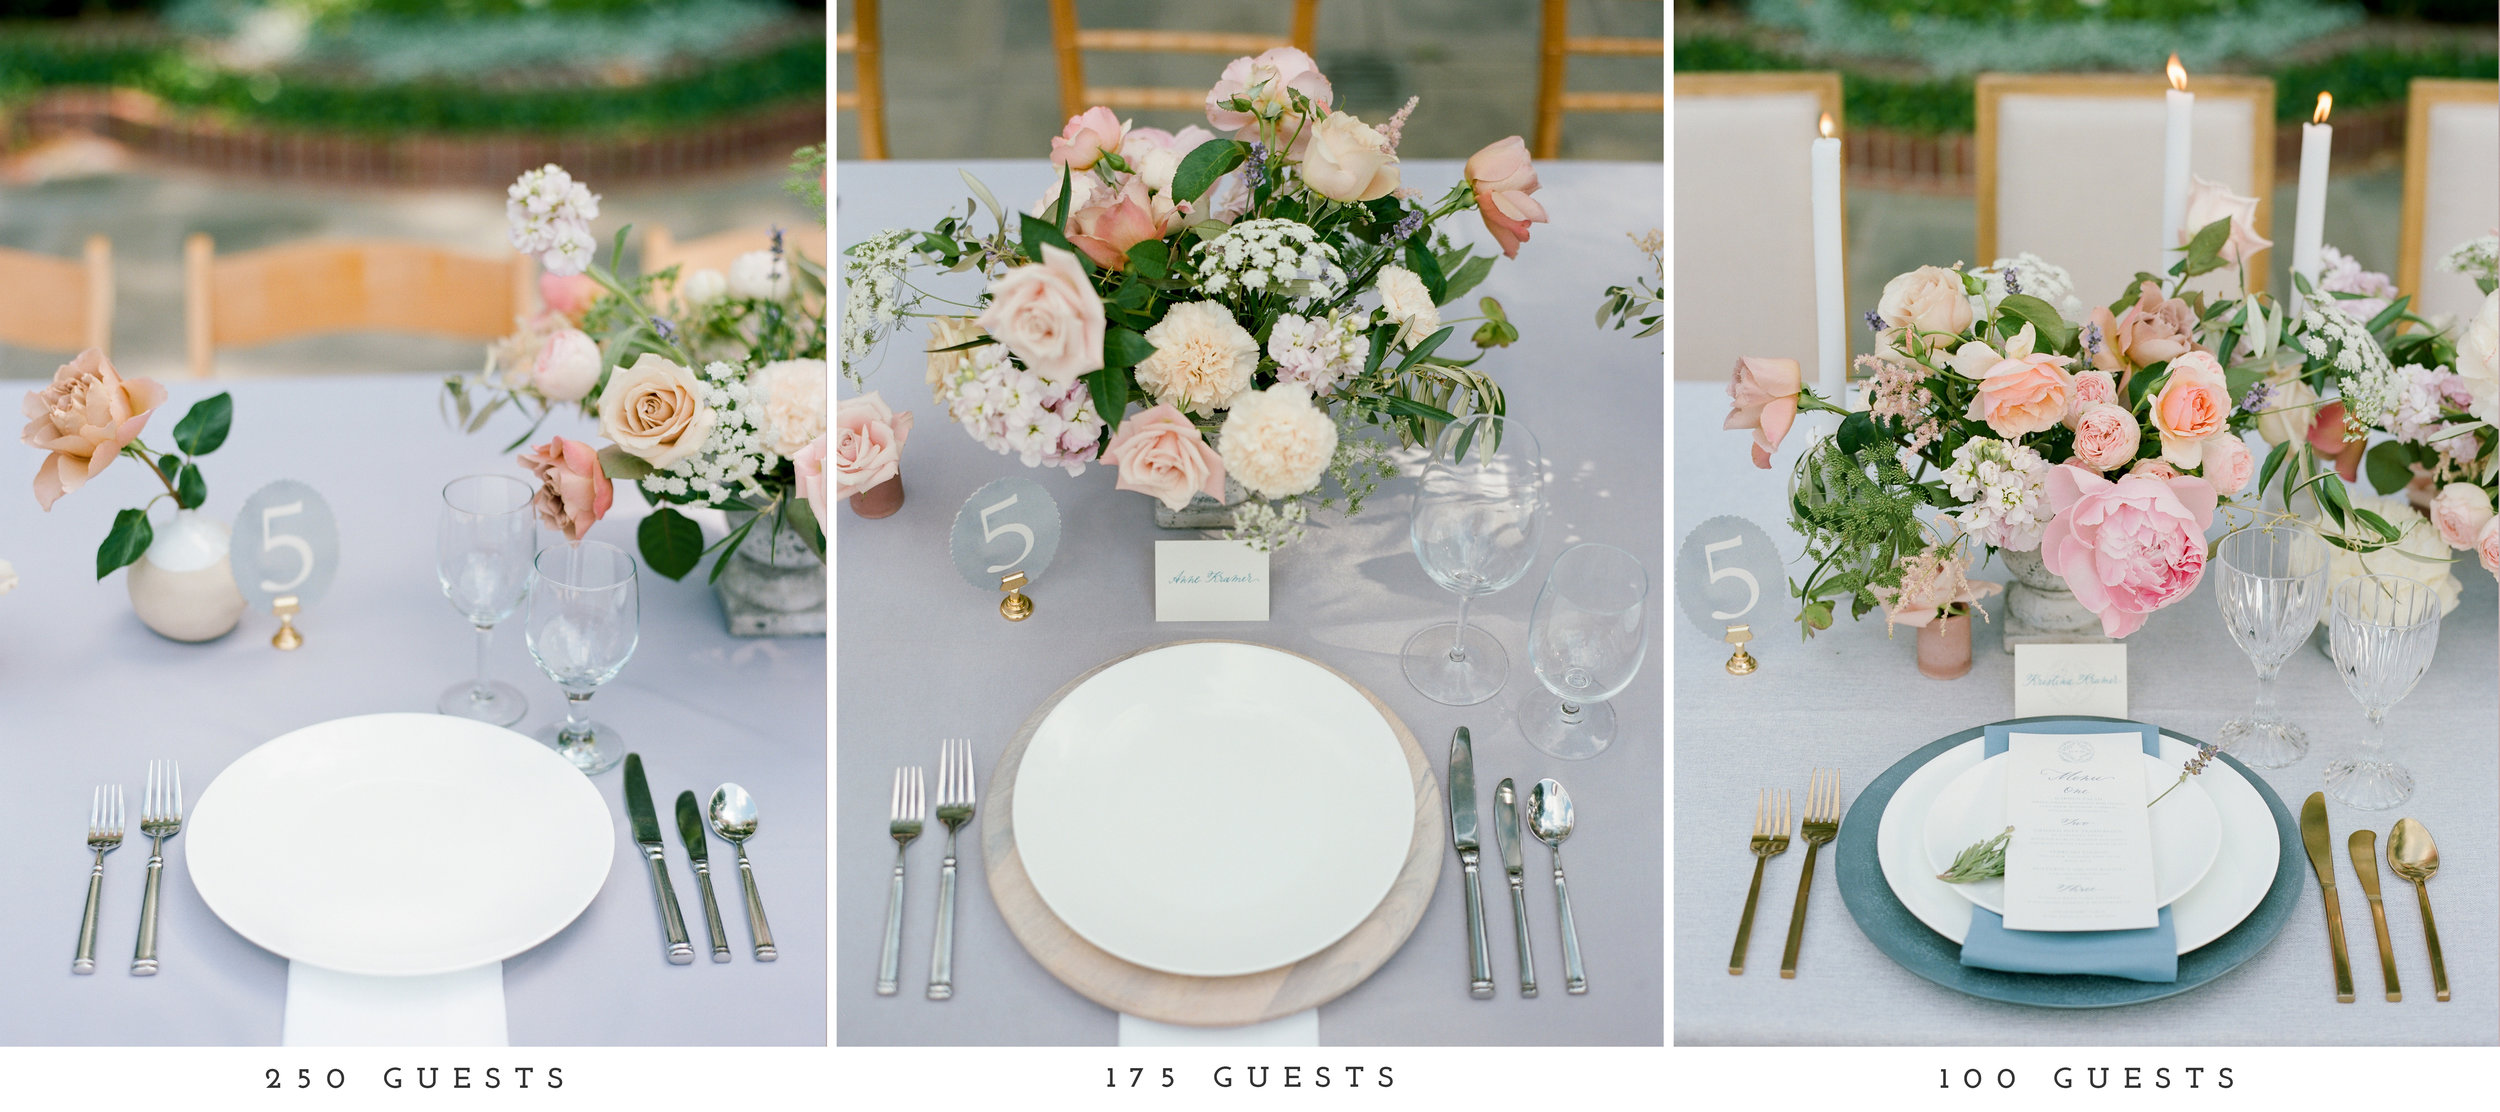 Going from left to right, we were able to incorporate more design elements rather to only use items included with the catering service